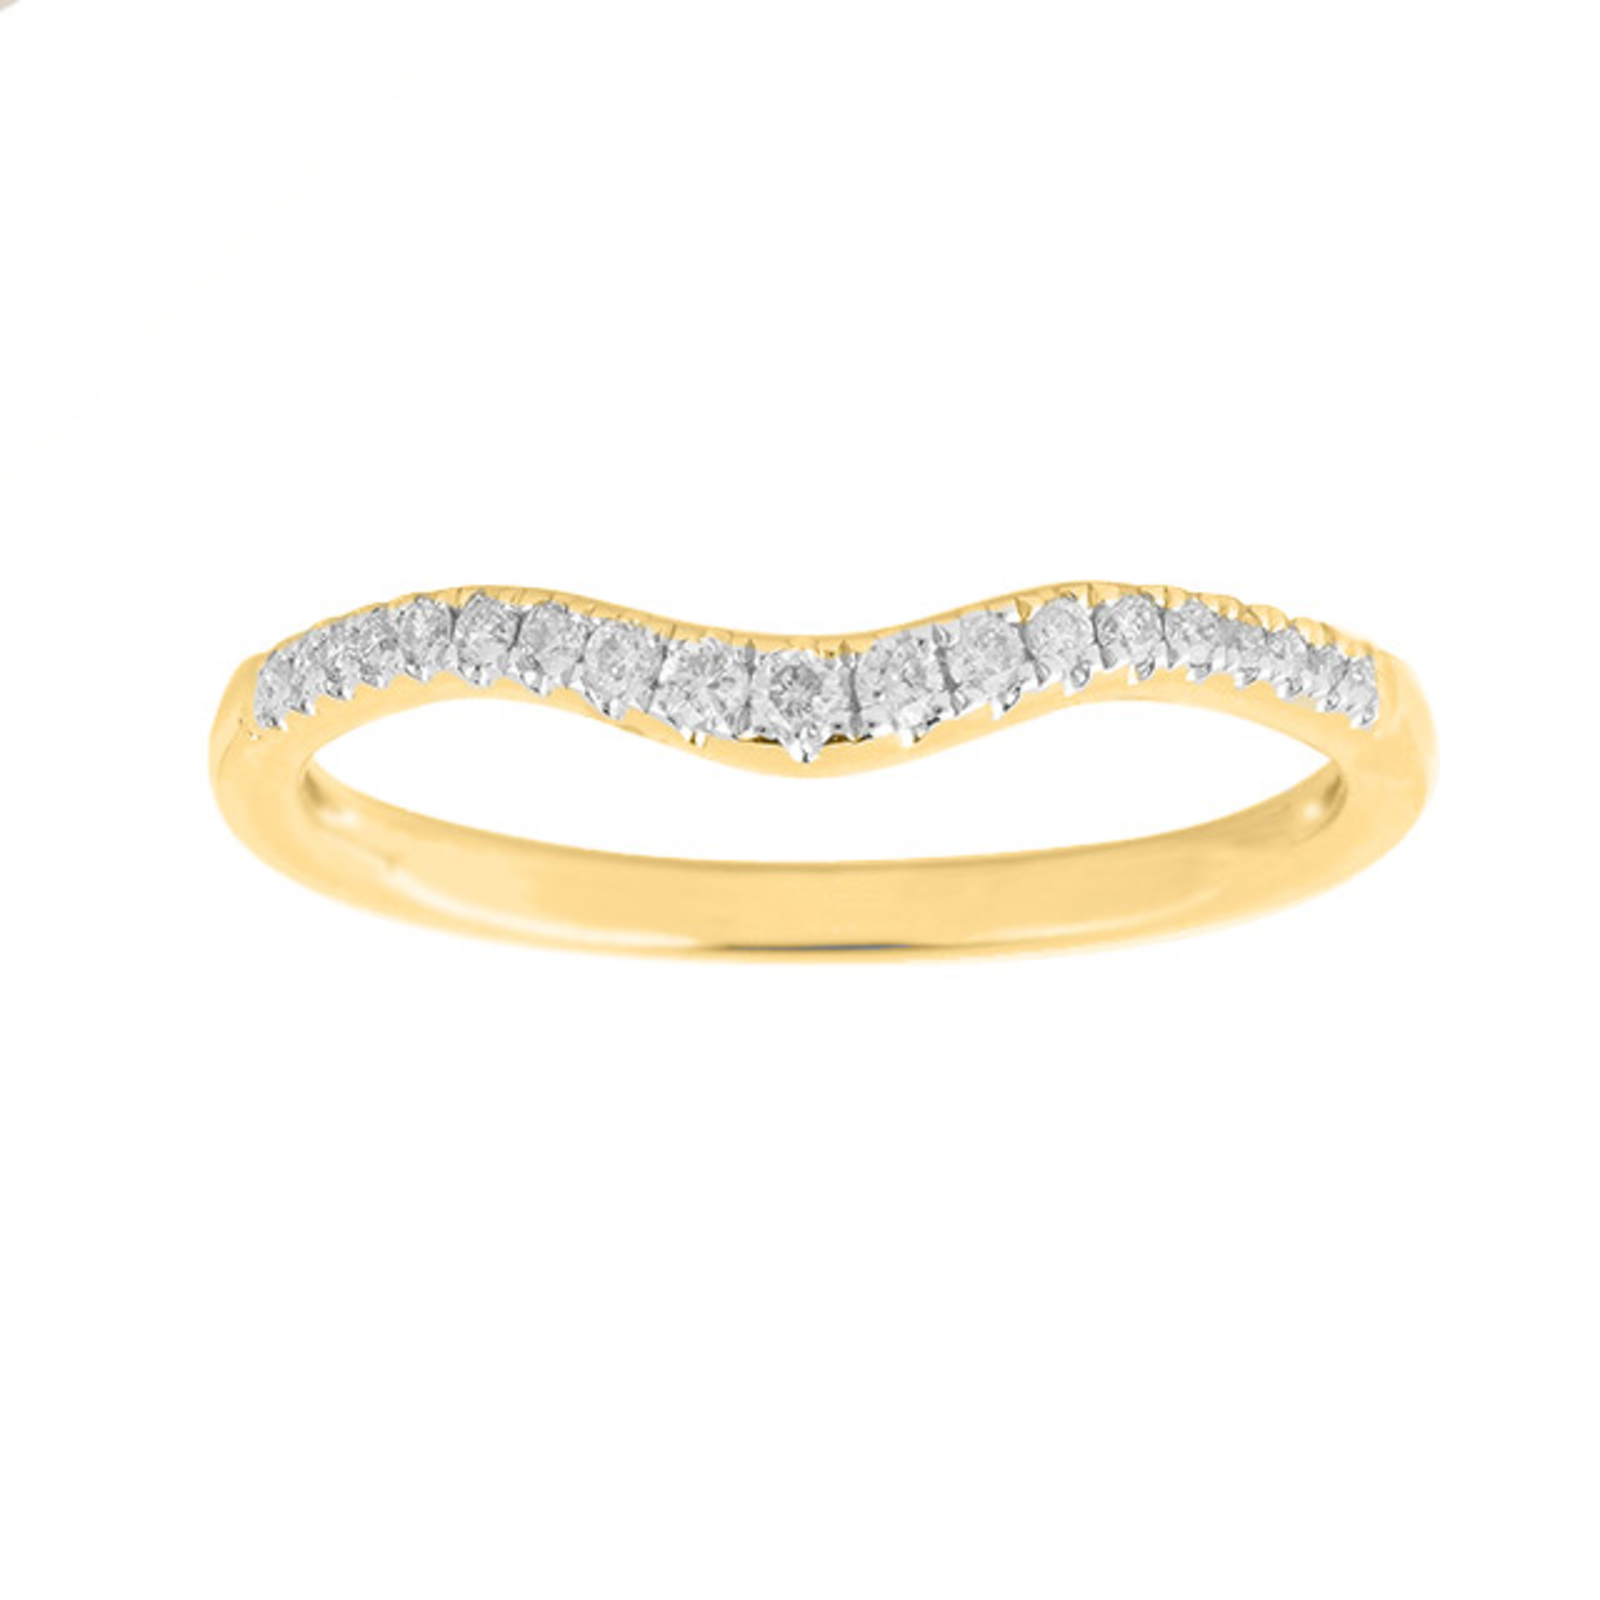 Image of Brilliant Cut 0.15 Carat Total Weight Diamond Set Ladies Shaped Wedding Ring in 18 Carat Yellow Gold - Ring Size I